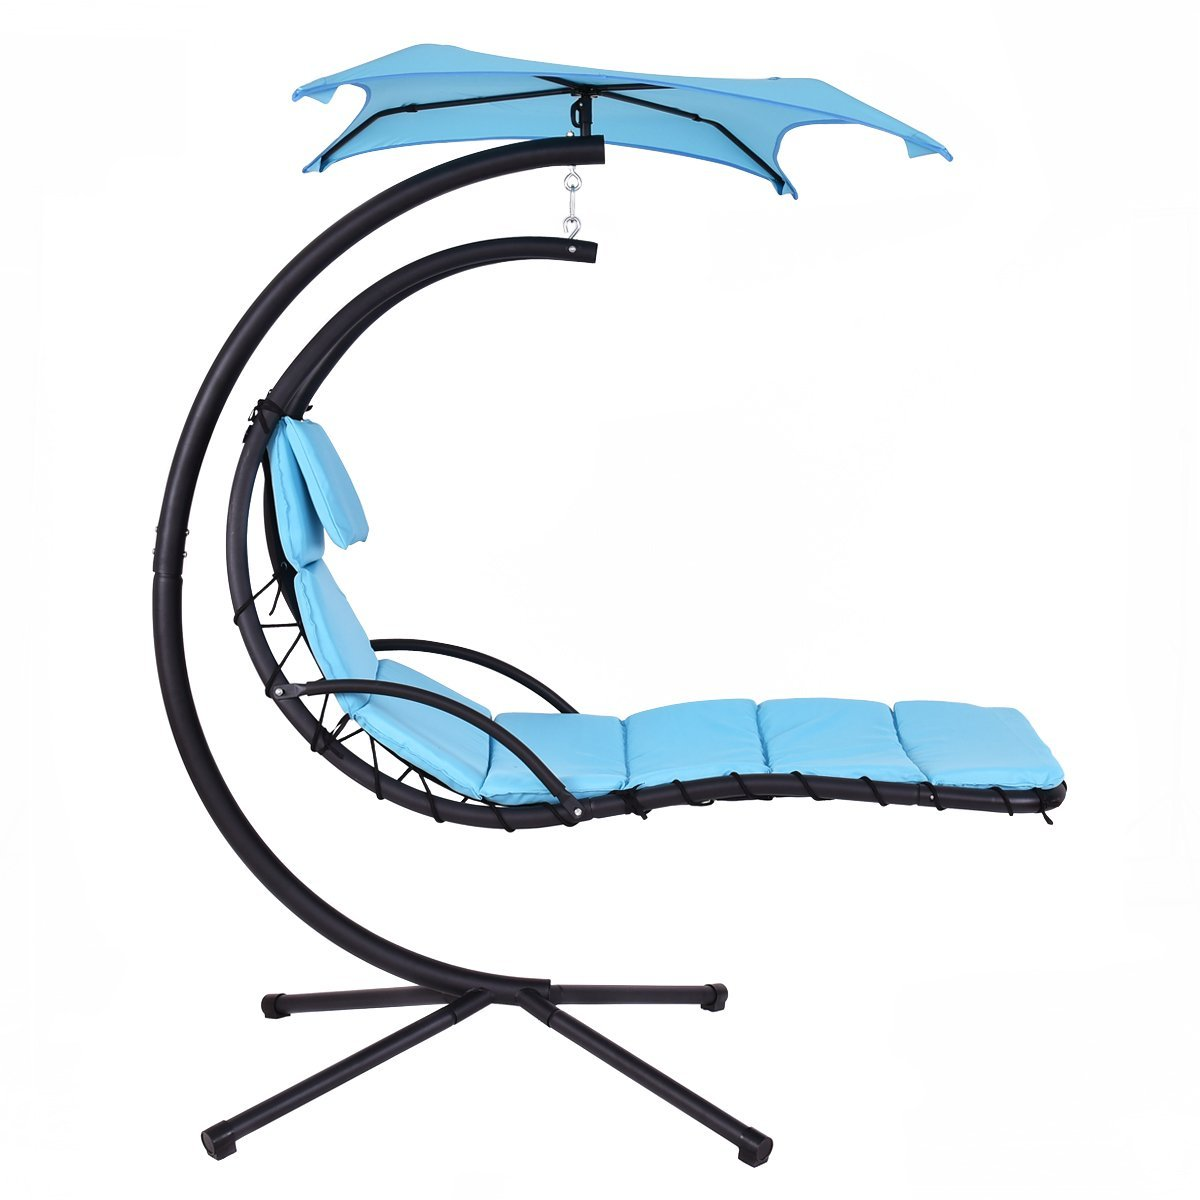 Giantex Hanging Lounge Hammock Chair - Blue